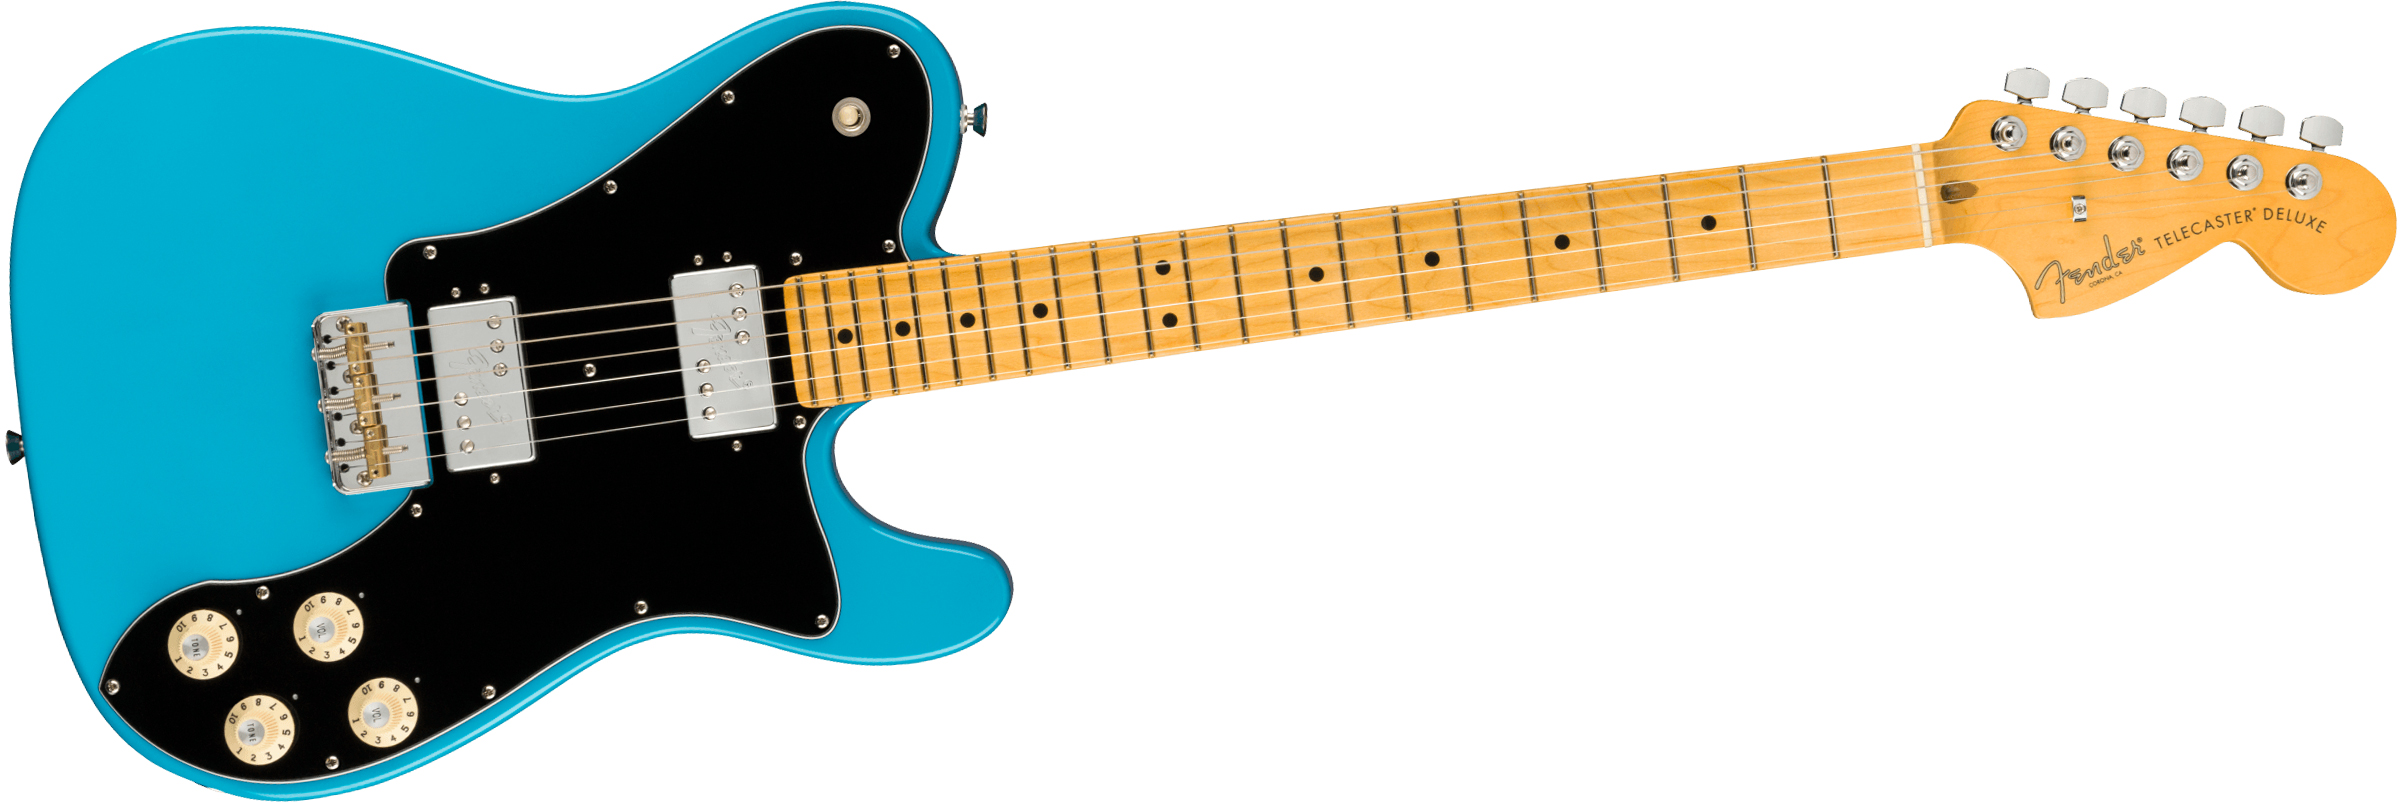 FENDER-American-Professional-II-Telecaster-Deluxe-MN-Miami-Blue-0113962719-sku-24227